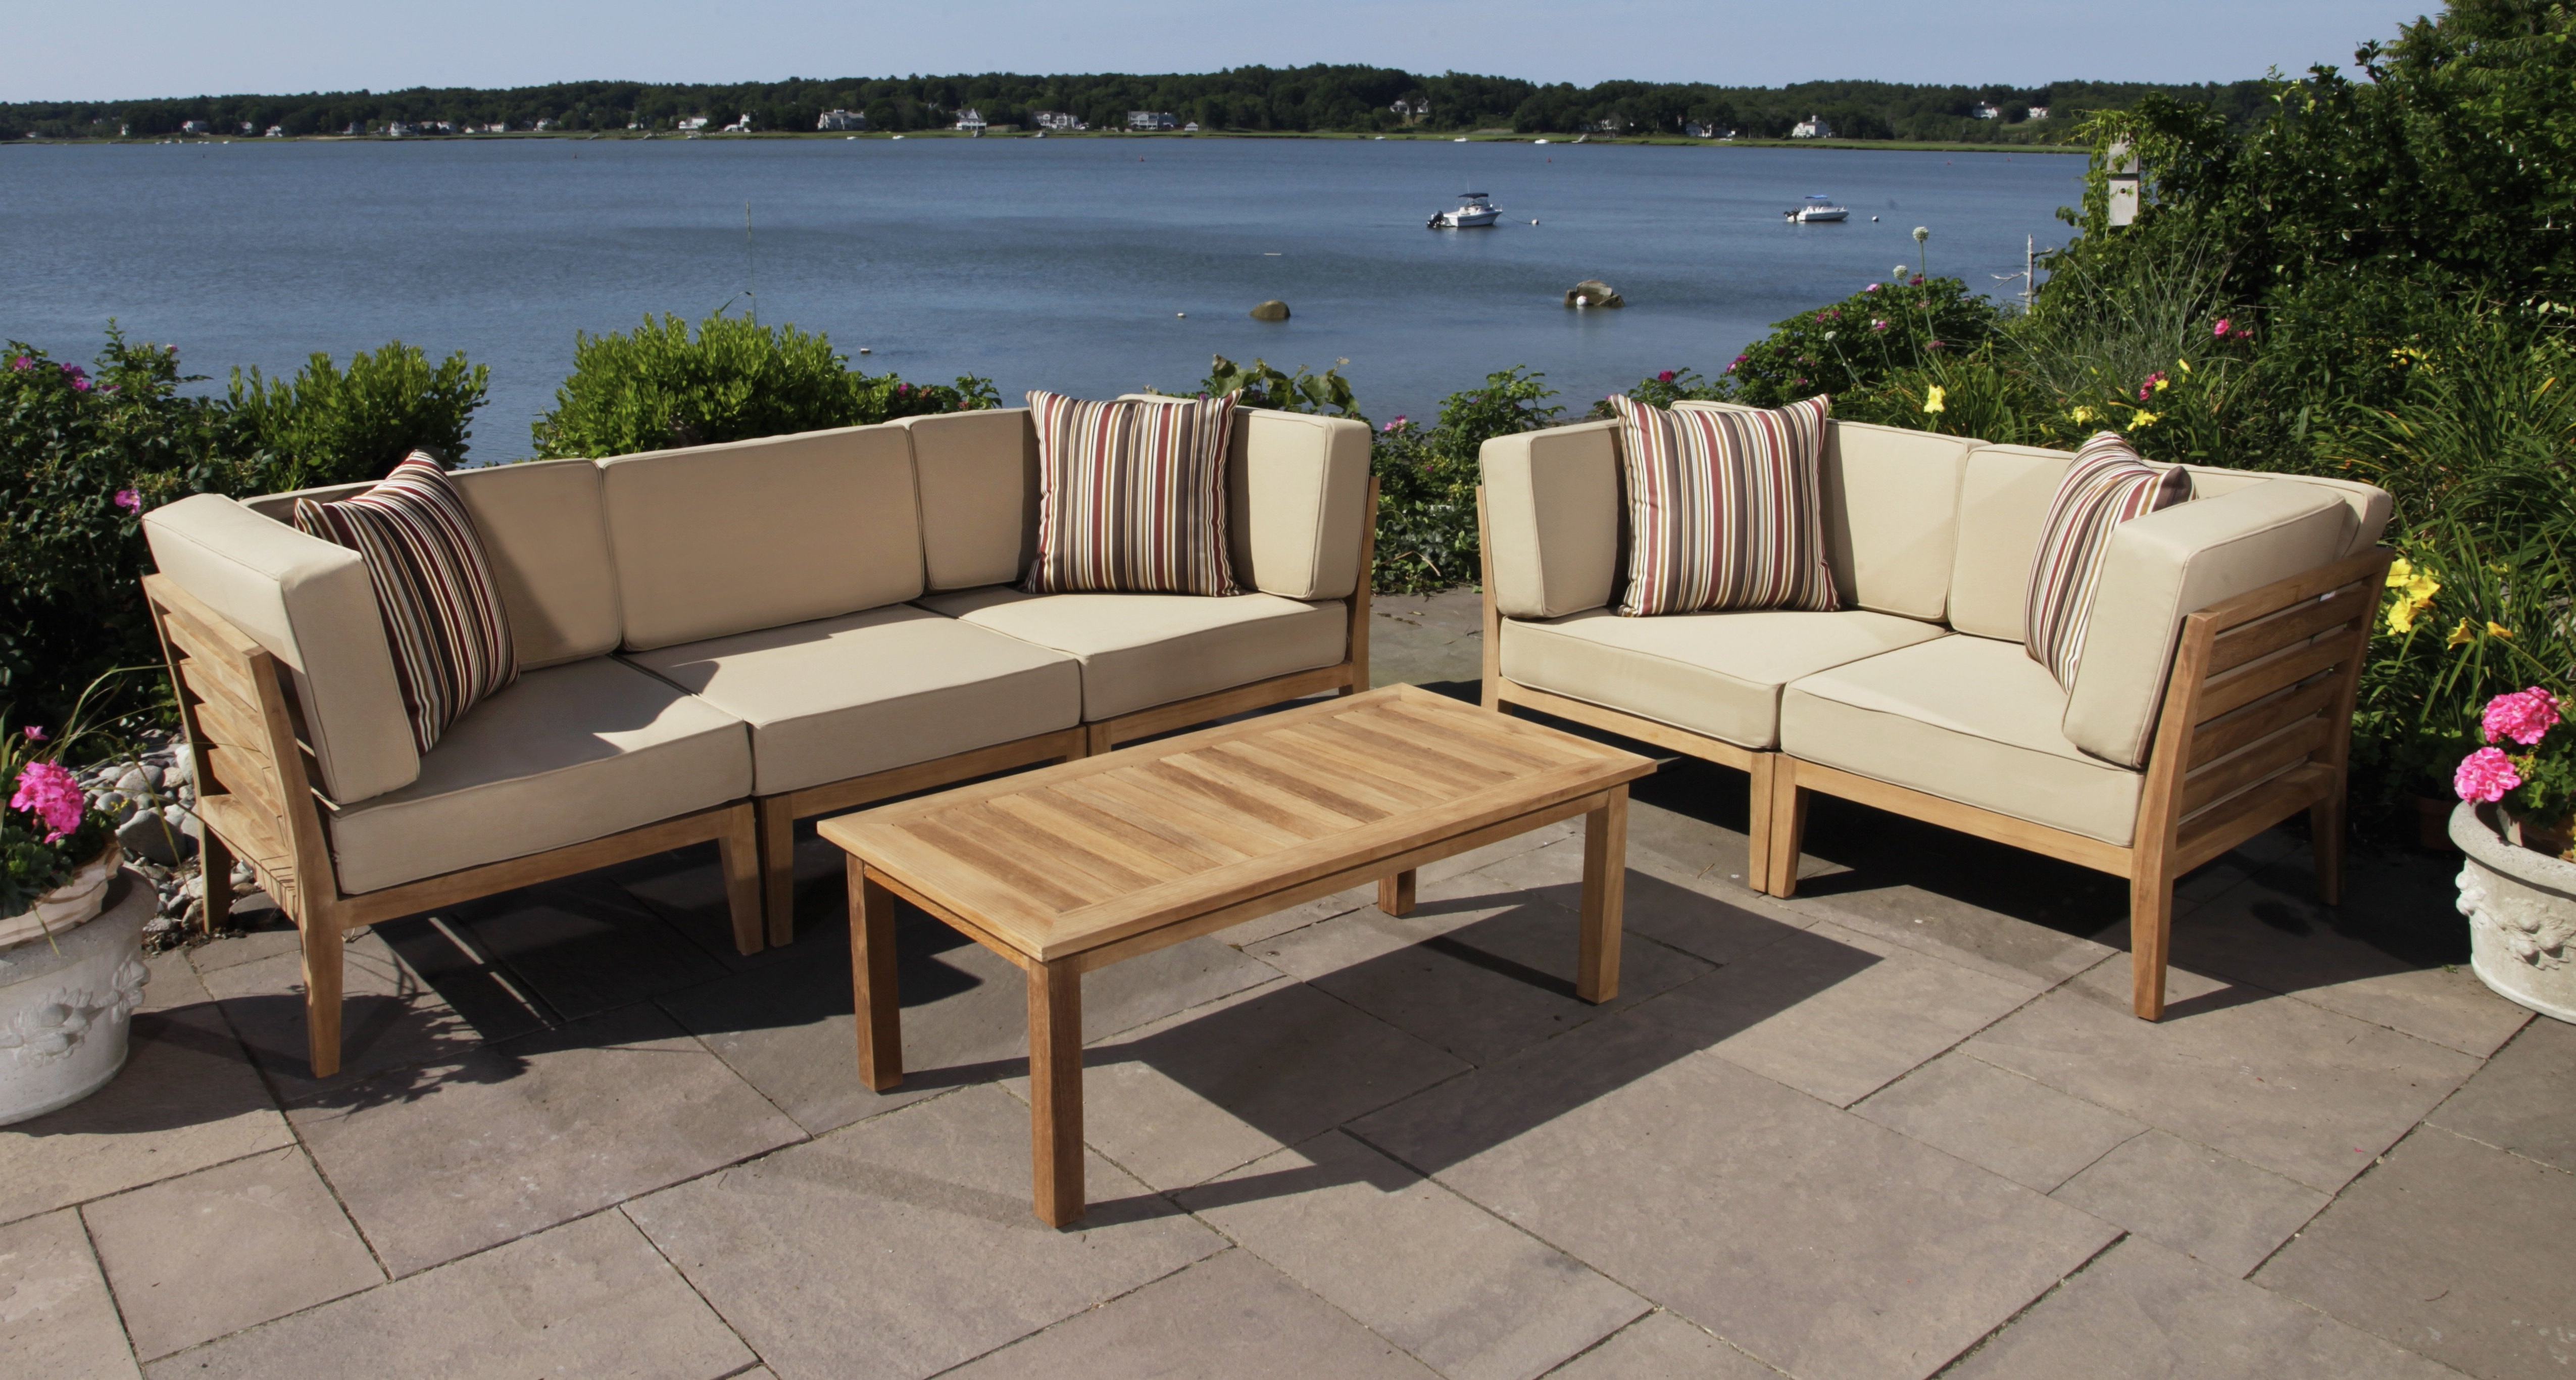 Well Known Antonia Teak Patio Sectionals With Cushions Throughout Bali 6 Piece Teak Sectional Set With Cushions (View 24 of 25)